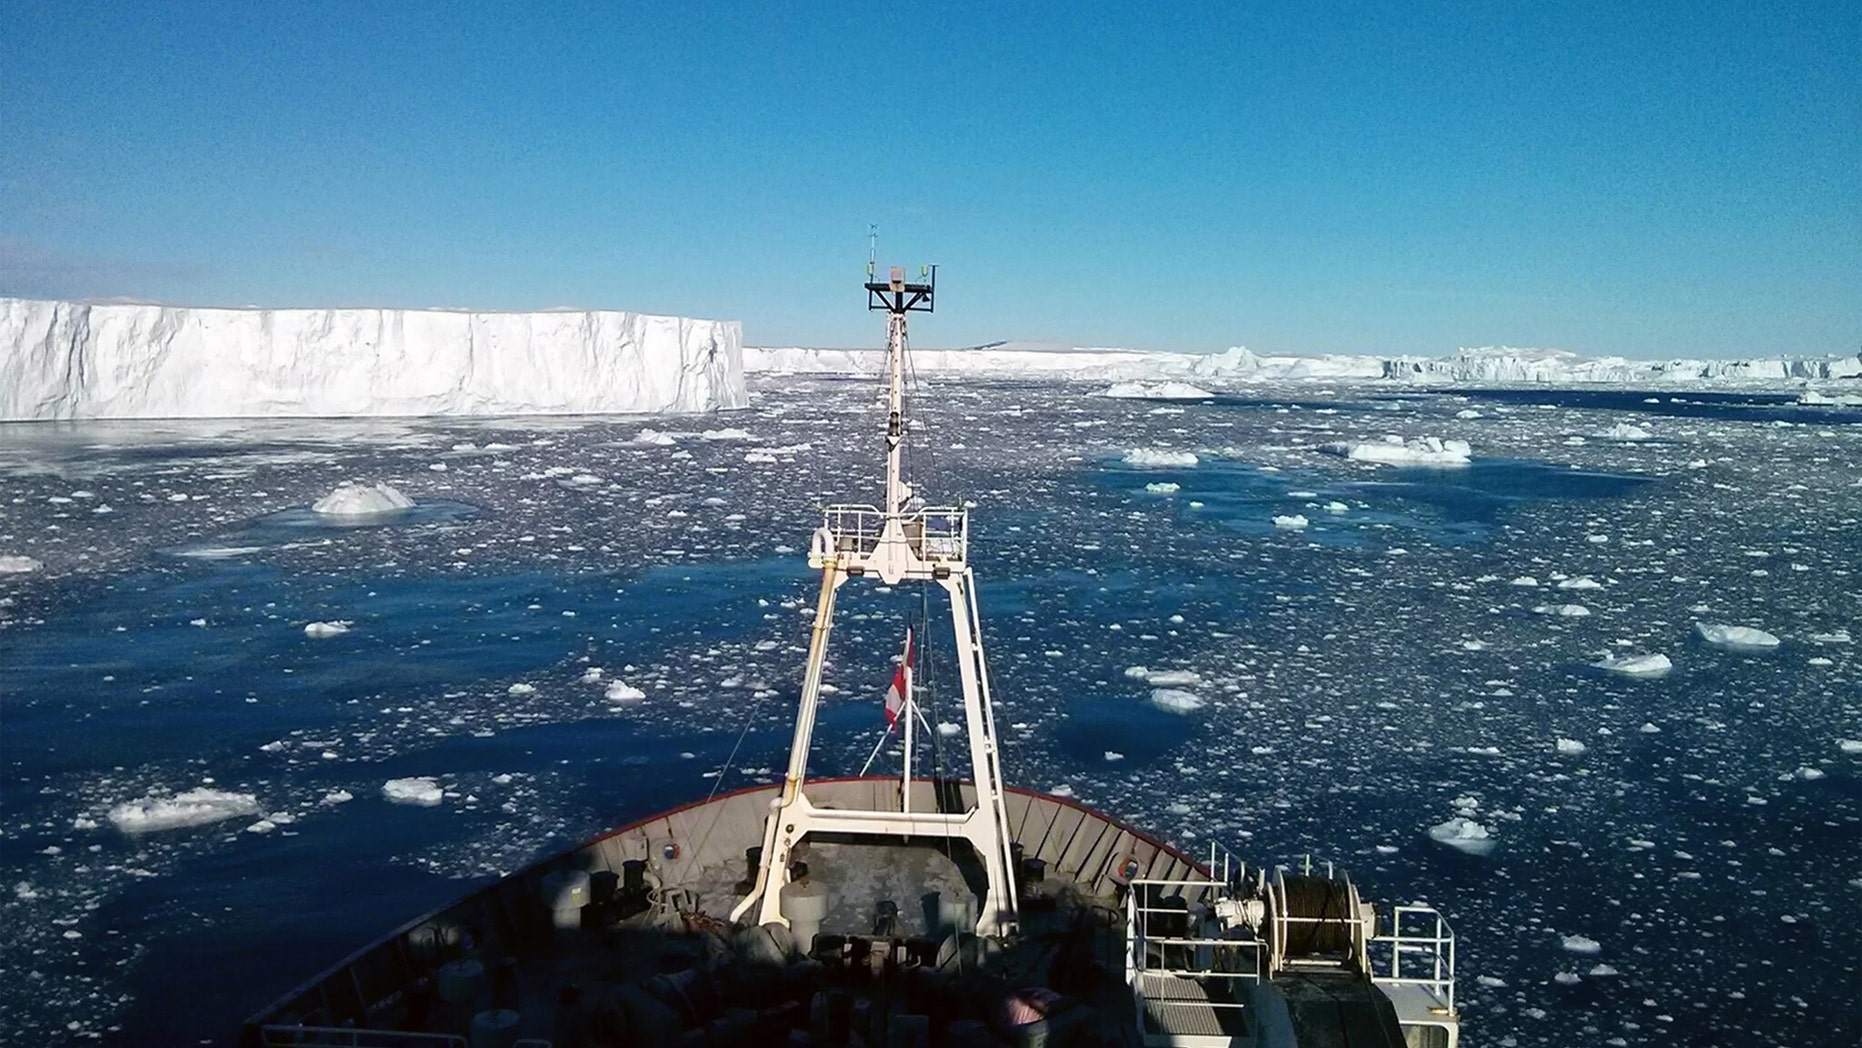 View from the bow of the icebreaker the RRS James Clark Ross on a 2014 scientific expedition, during which University of Rhode Island researcher and five other scientists discovered an active volcanic heat source beneath the Pine Island Glacier in Antarctica.